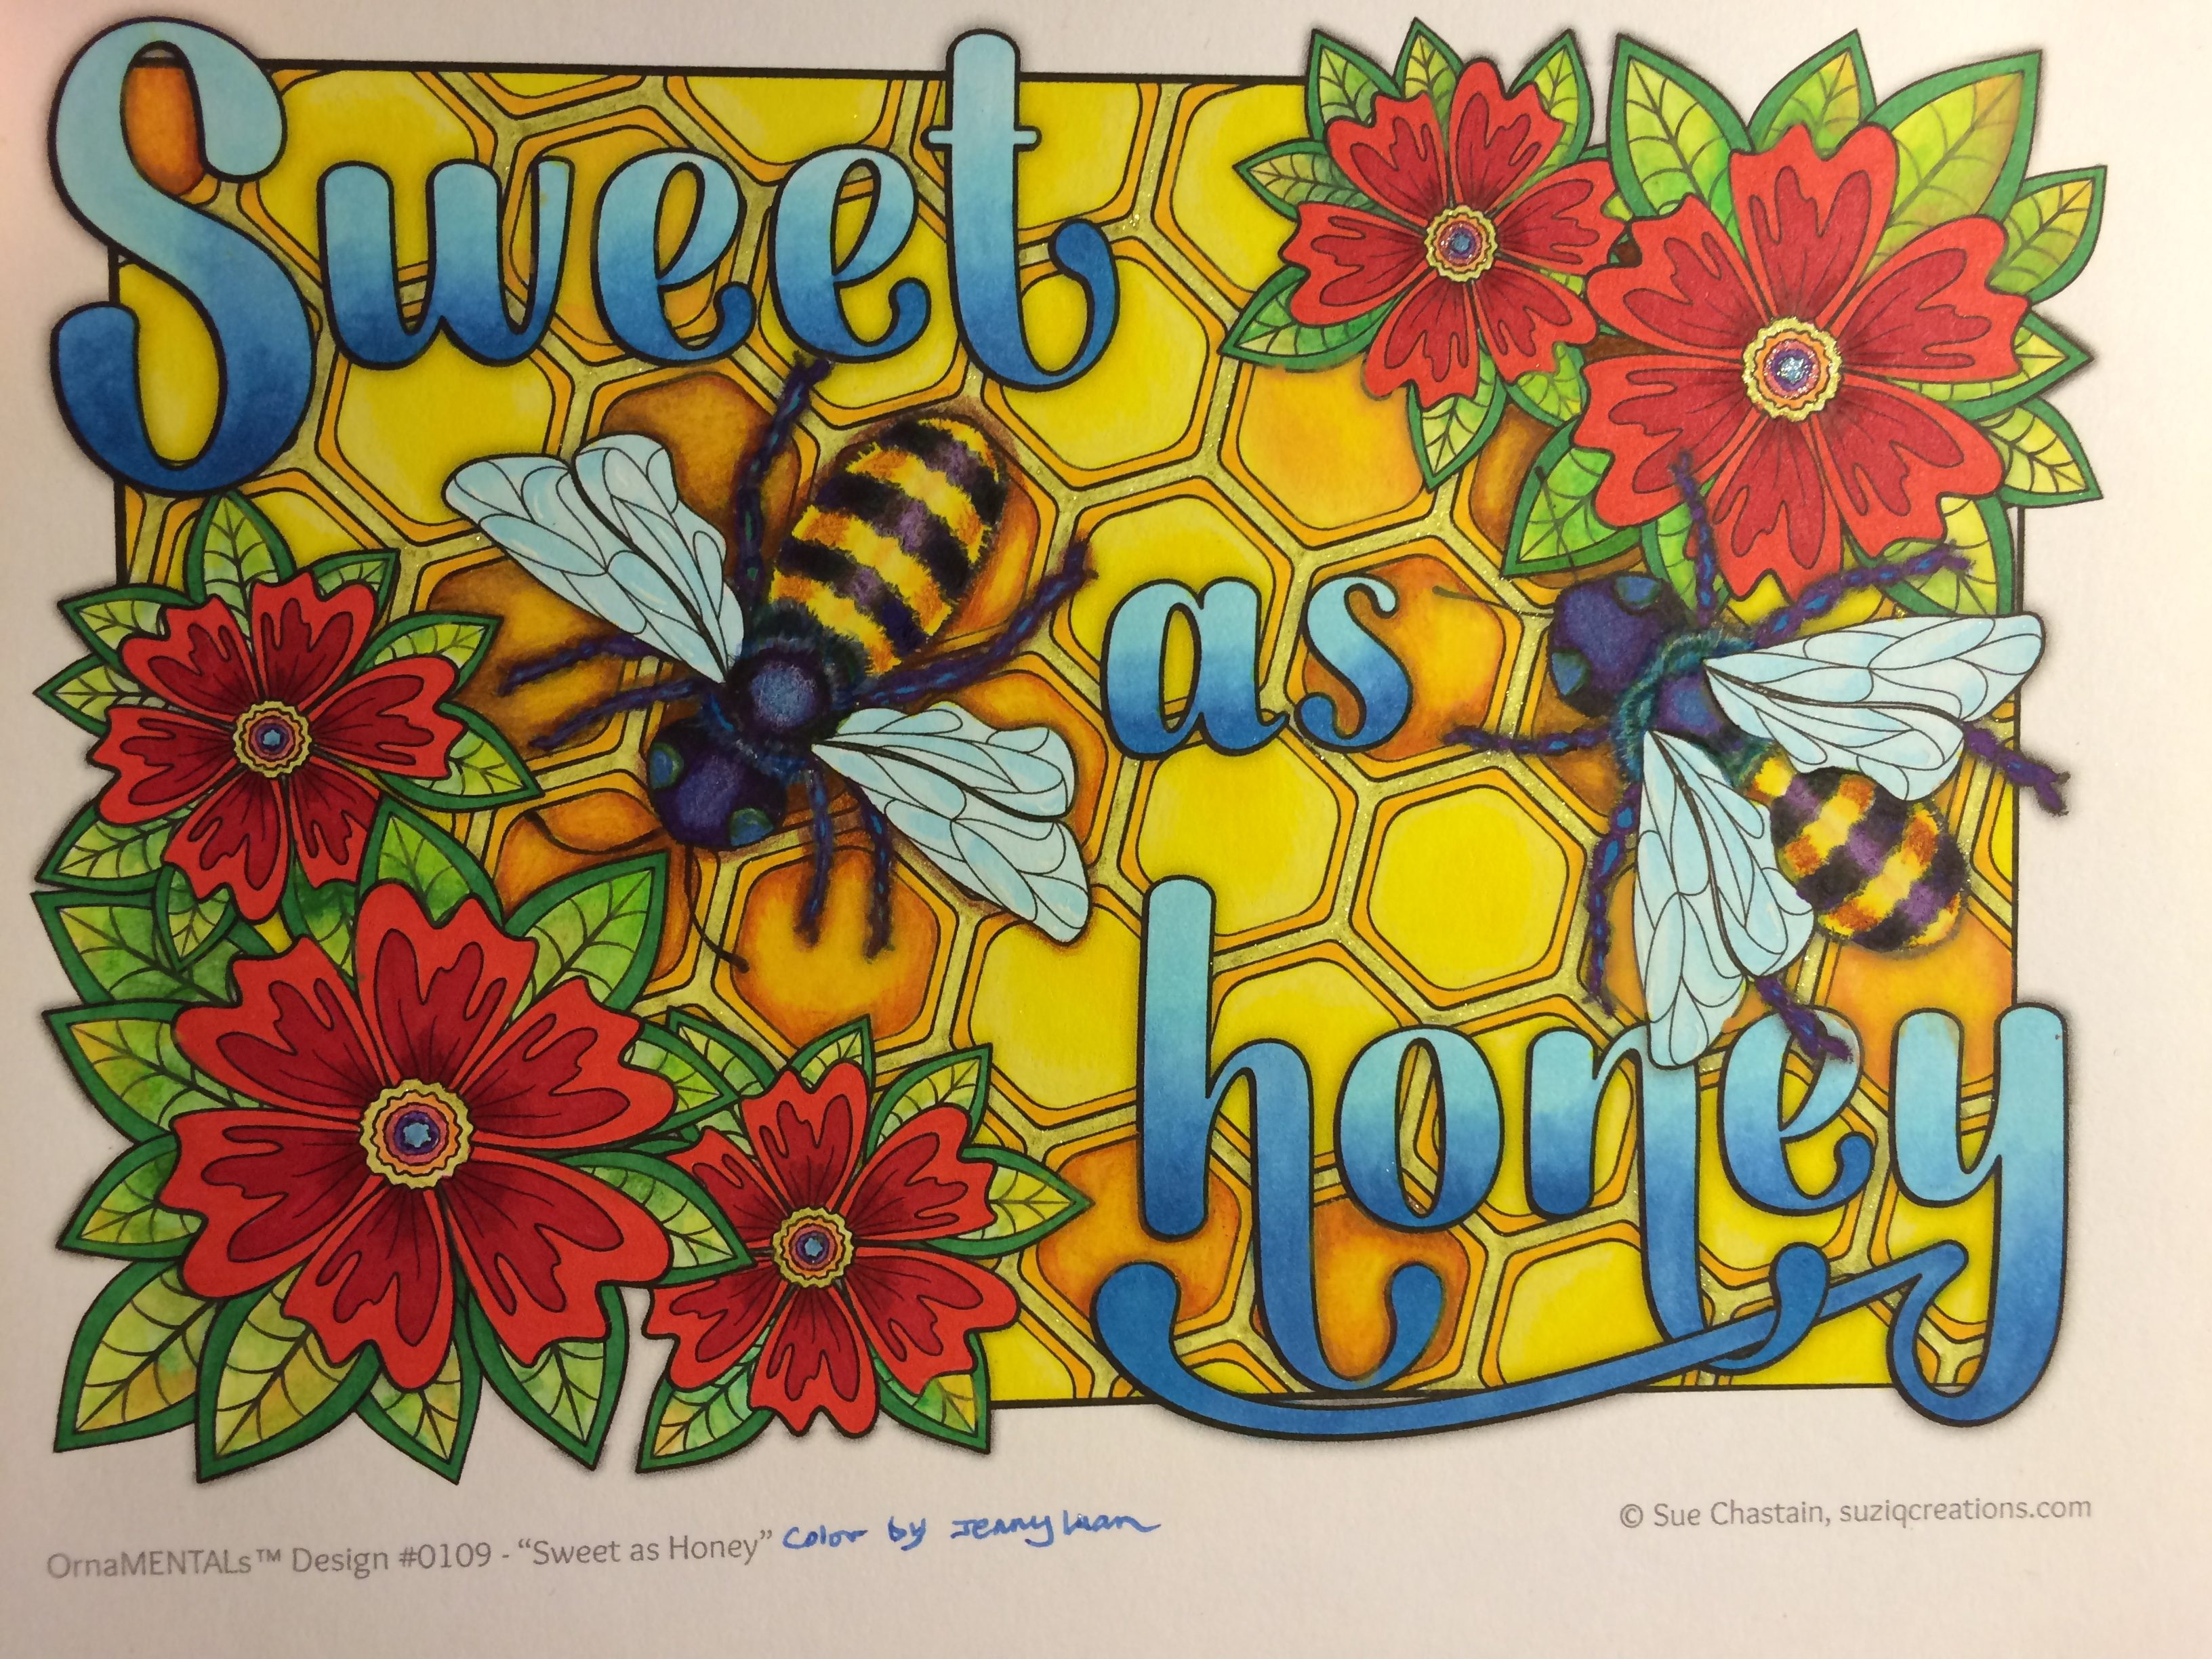 """Sweet as Honey"" from Feel Good Words, colored by Jenny Luan."